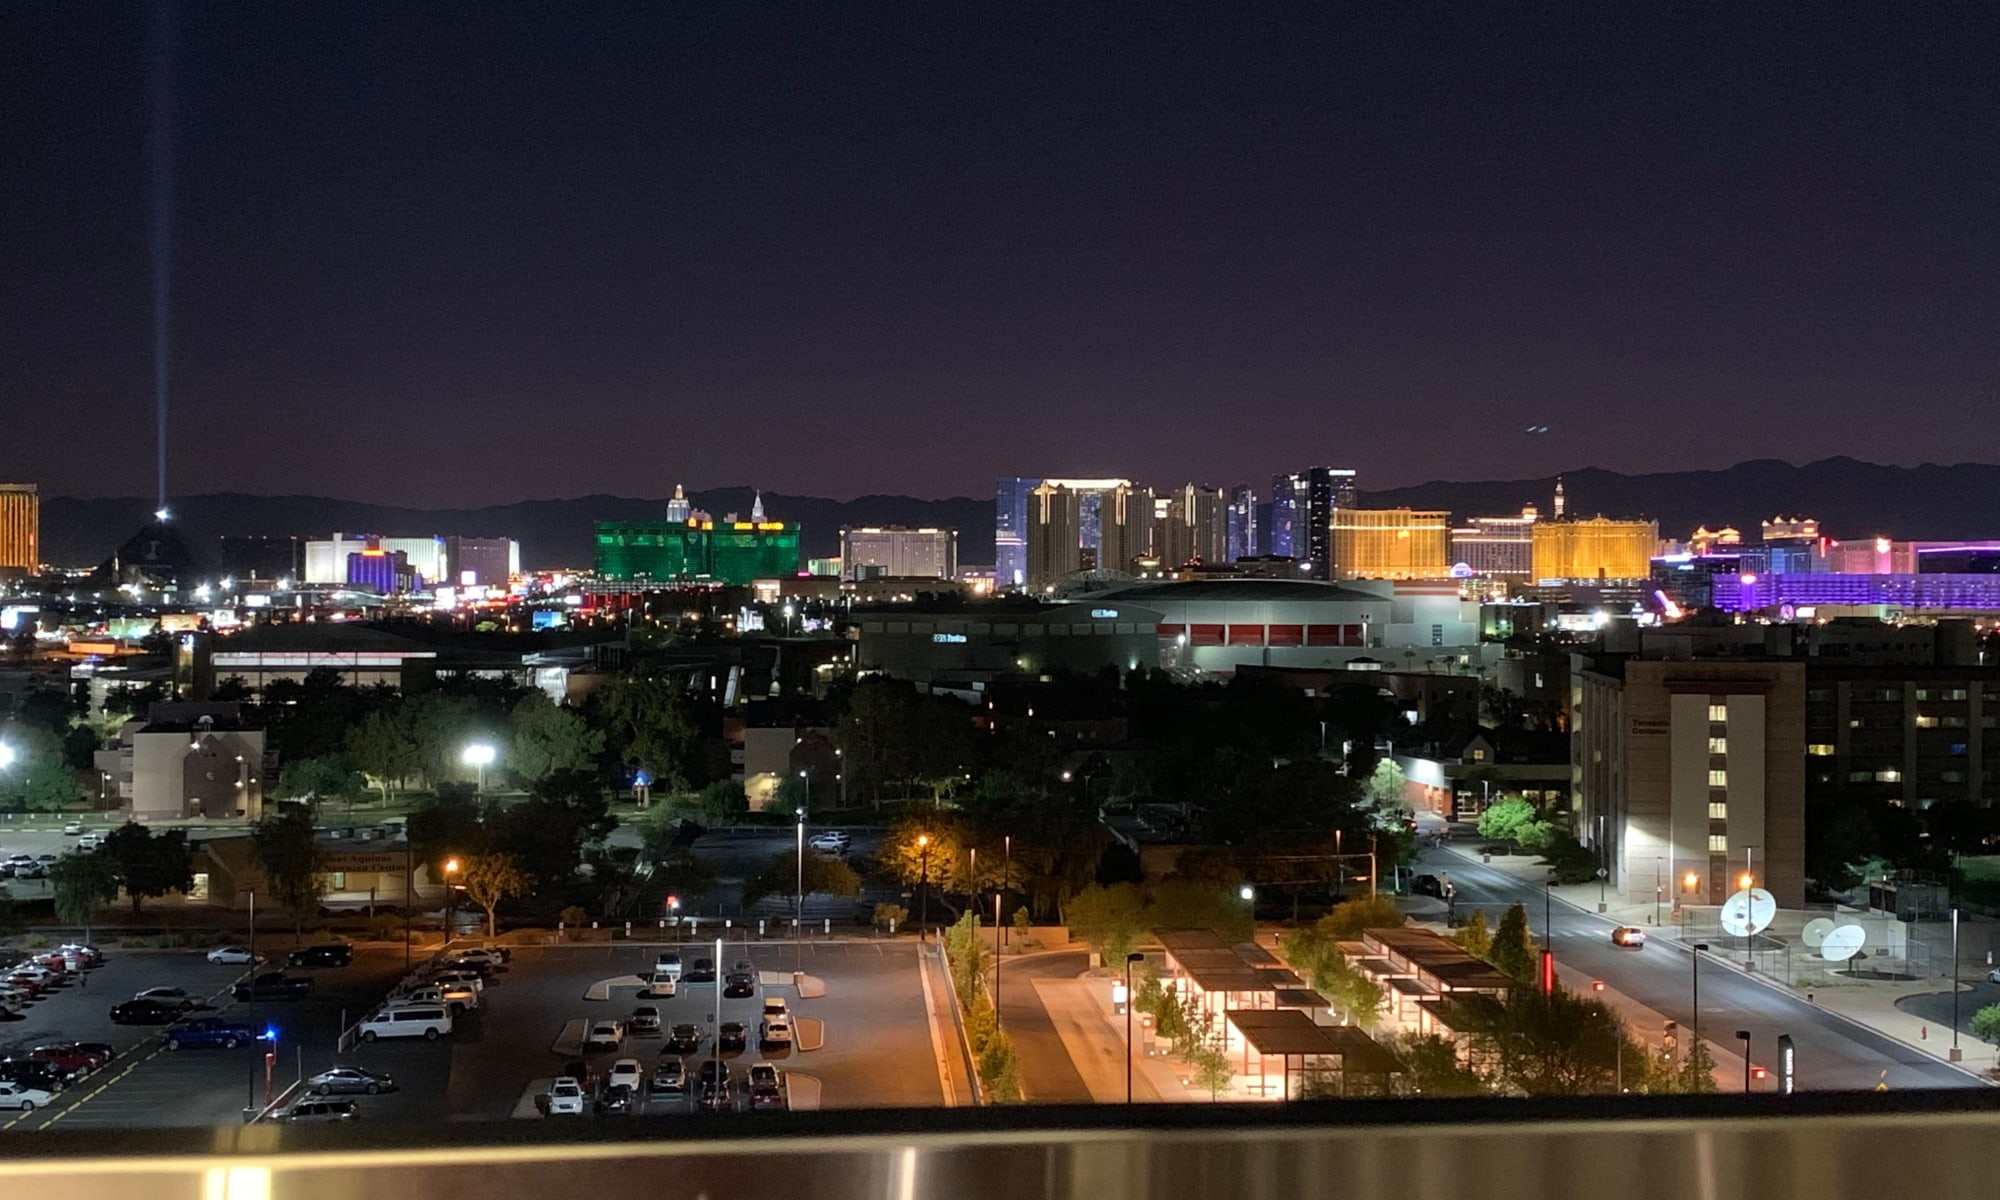 the yoU Apartments in Las Vegas, Nevada